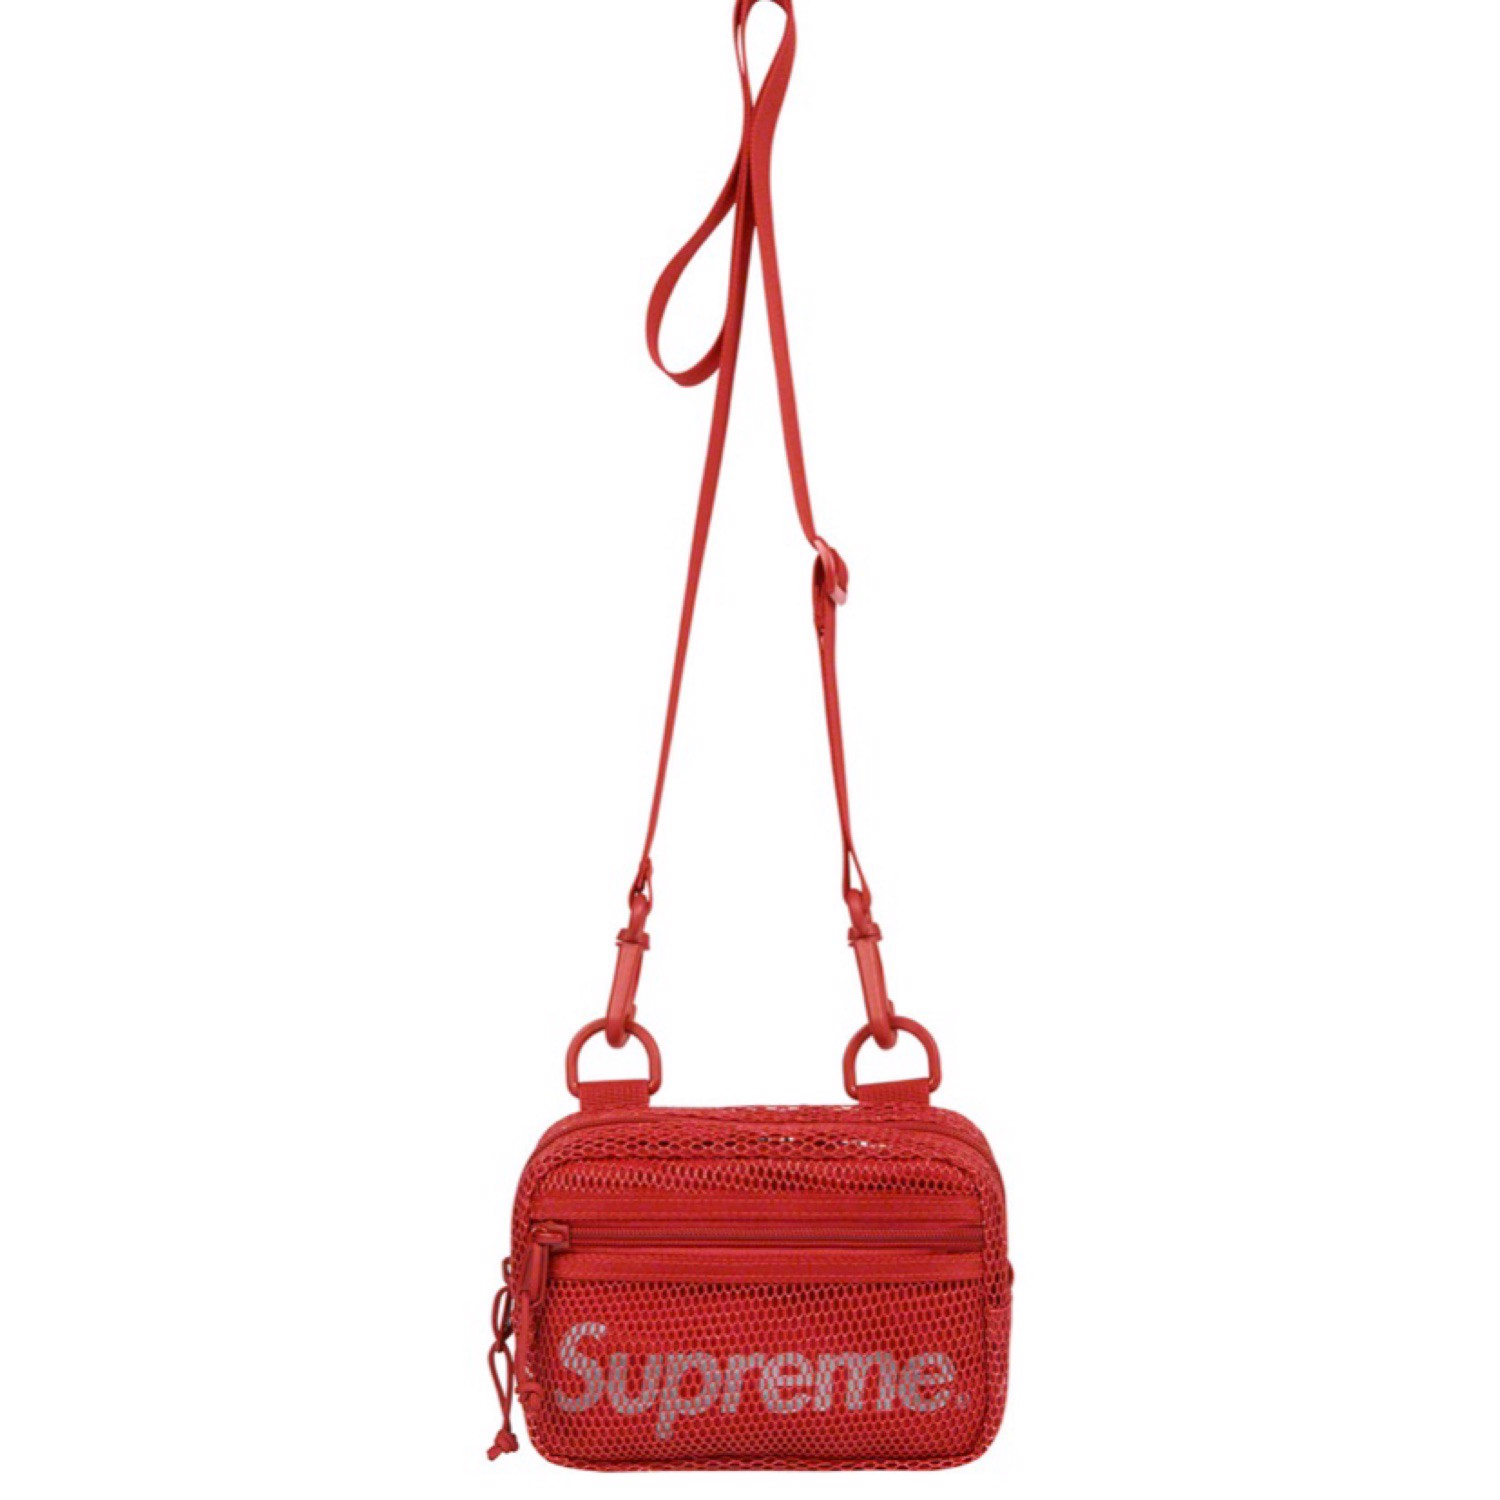 SUPREME SHOULDER BAG SS2020